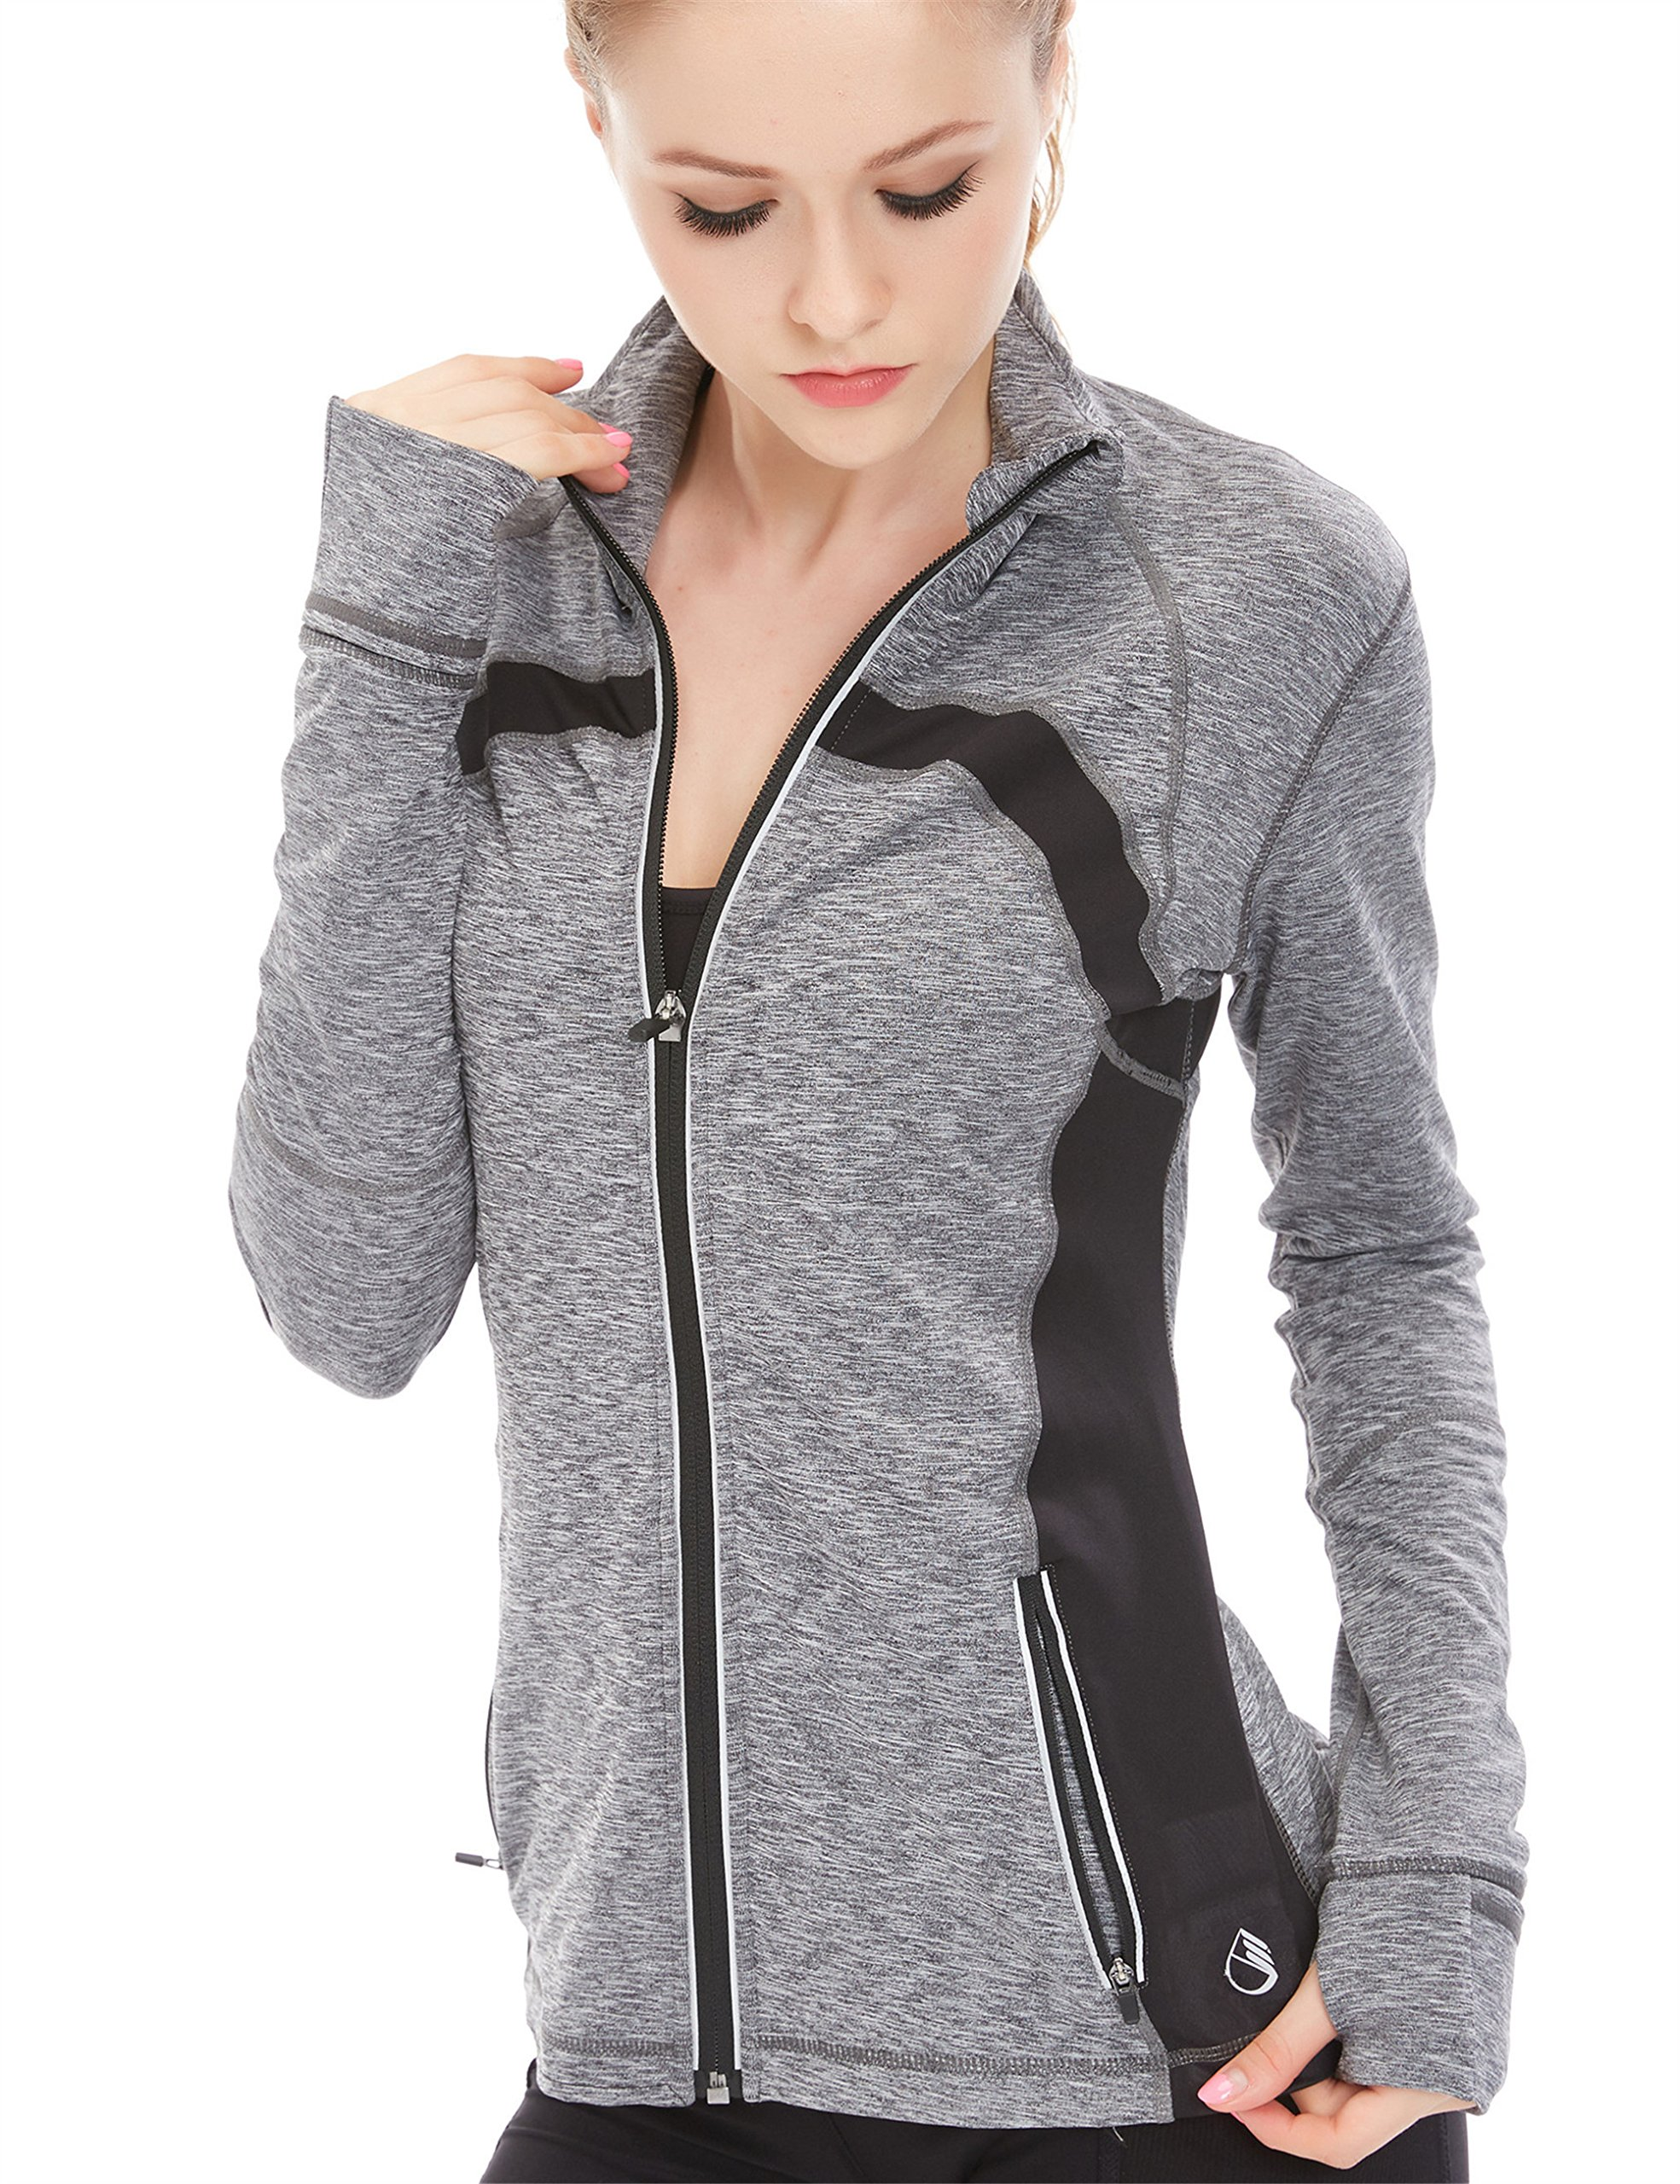 icyzone Women's Stretch Running Workout Yoga Full Zip Jacket with Thumb Holes (S, Gray Melange)